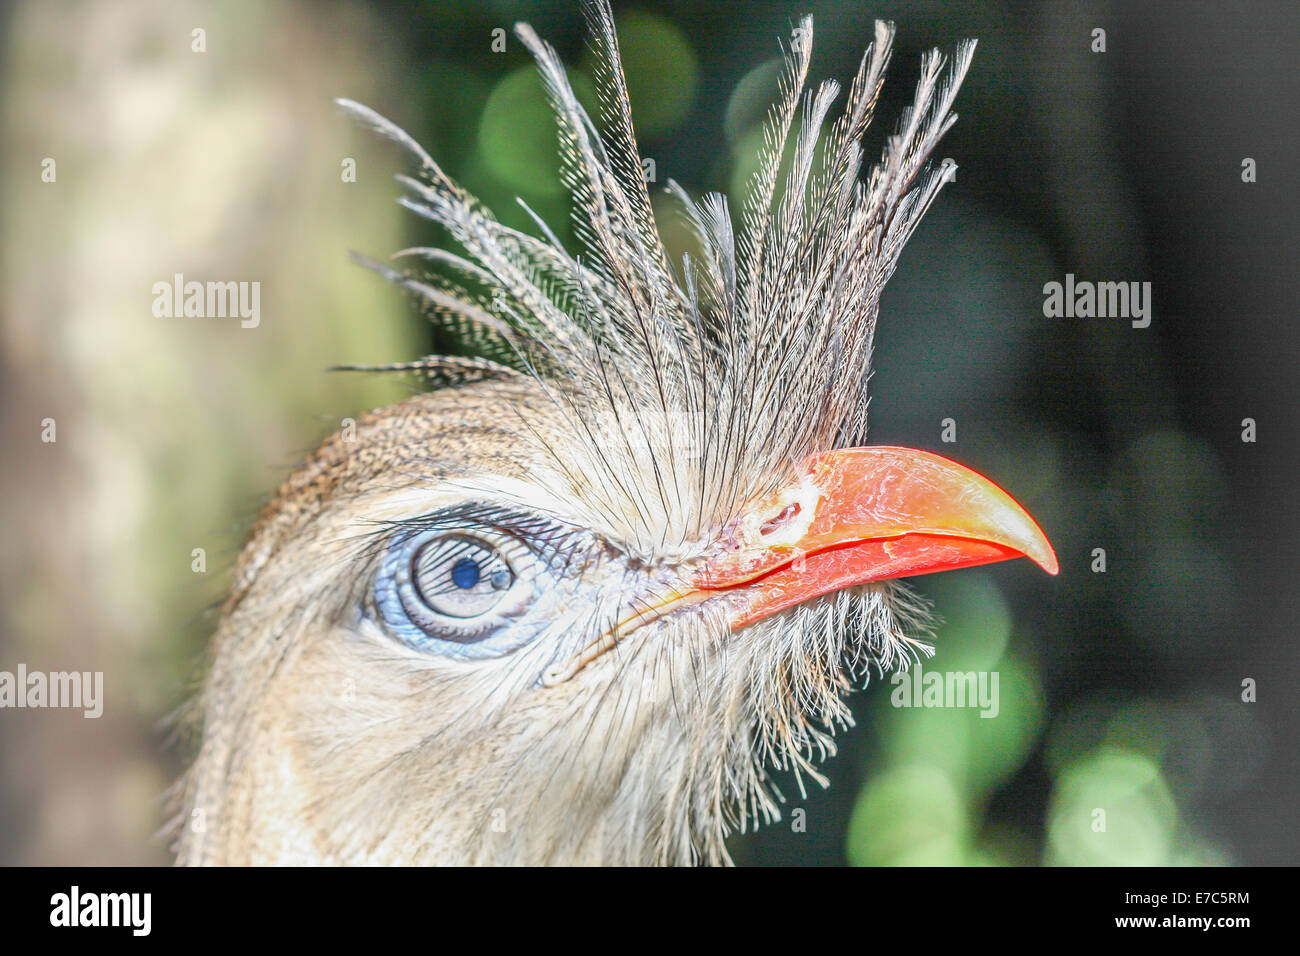 Crested bird - Face of a bird with an orange beak and feather crest Stock Photo